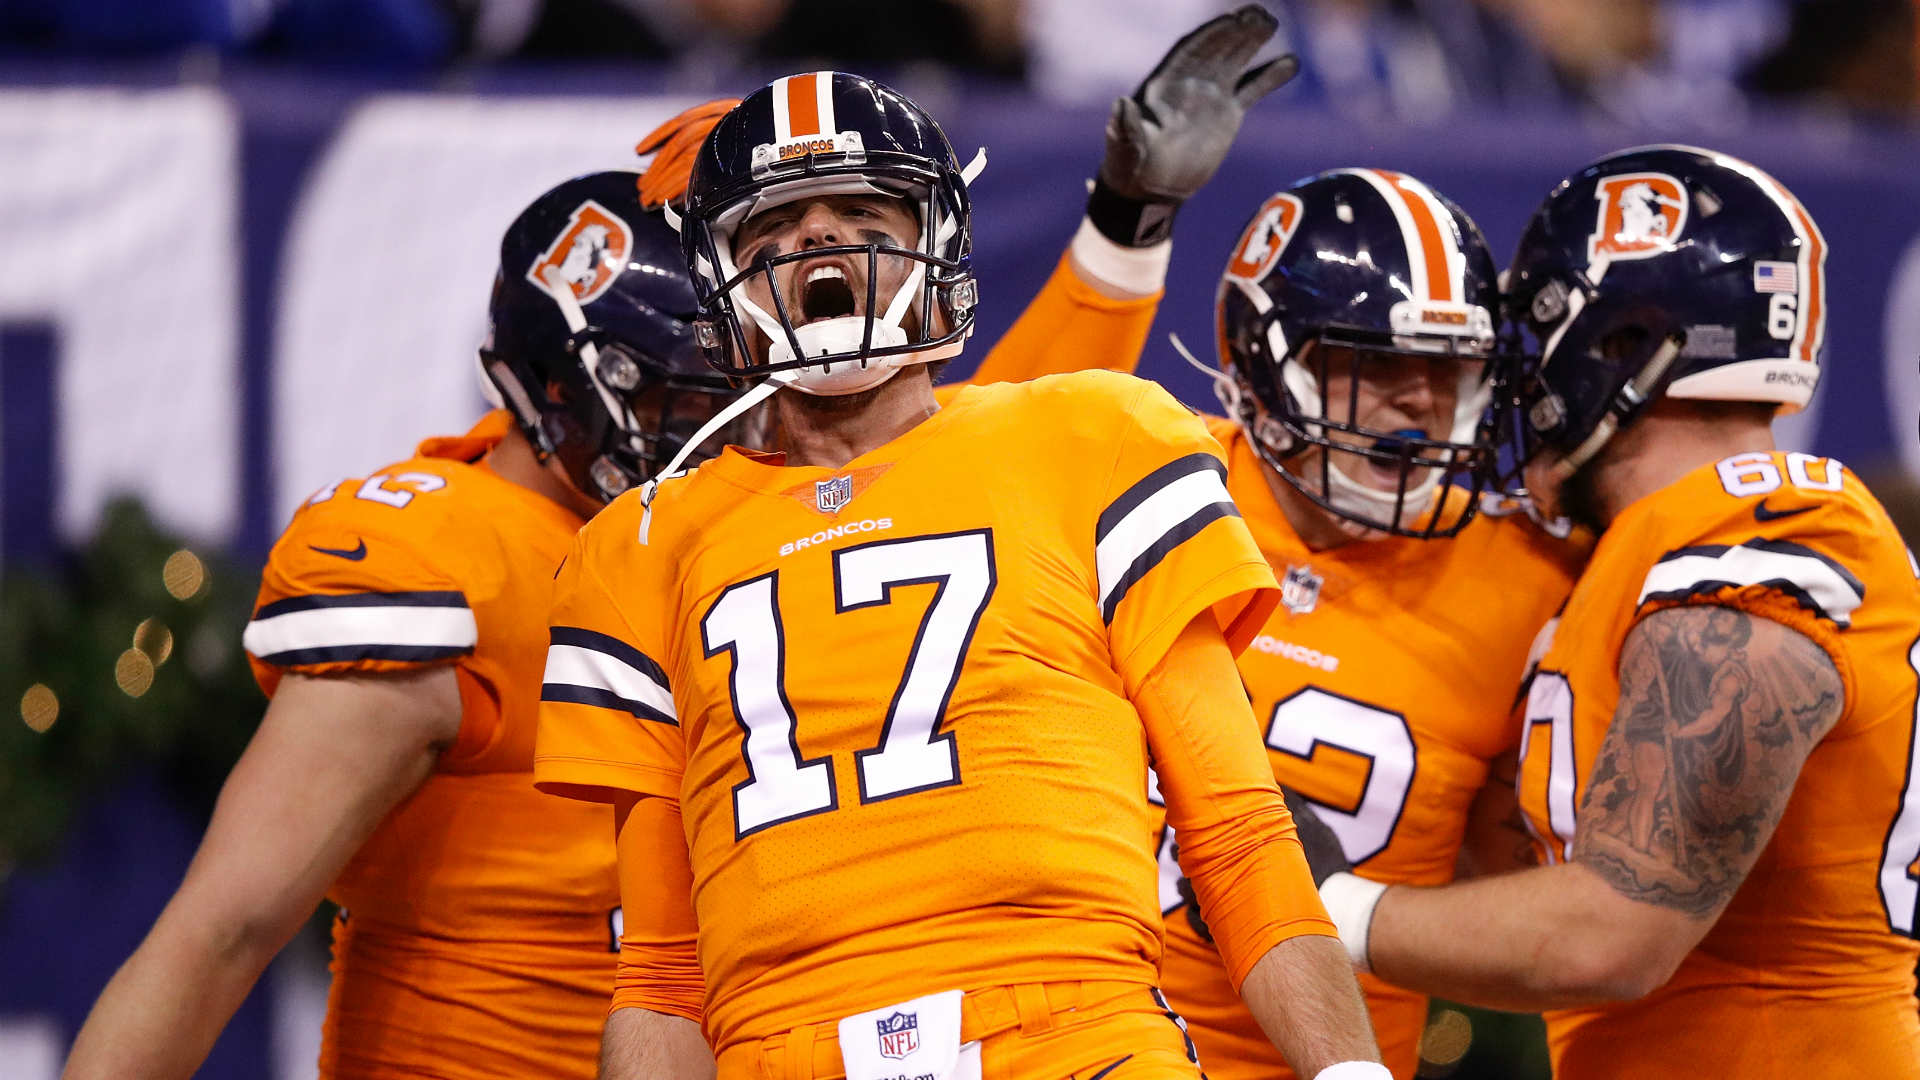 Brock Osweiler leads Broncos past Colts after Trevor Siemian injured